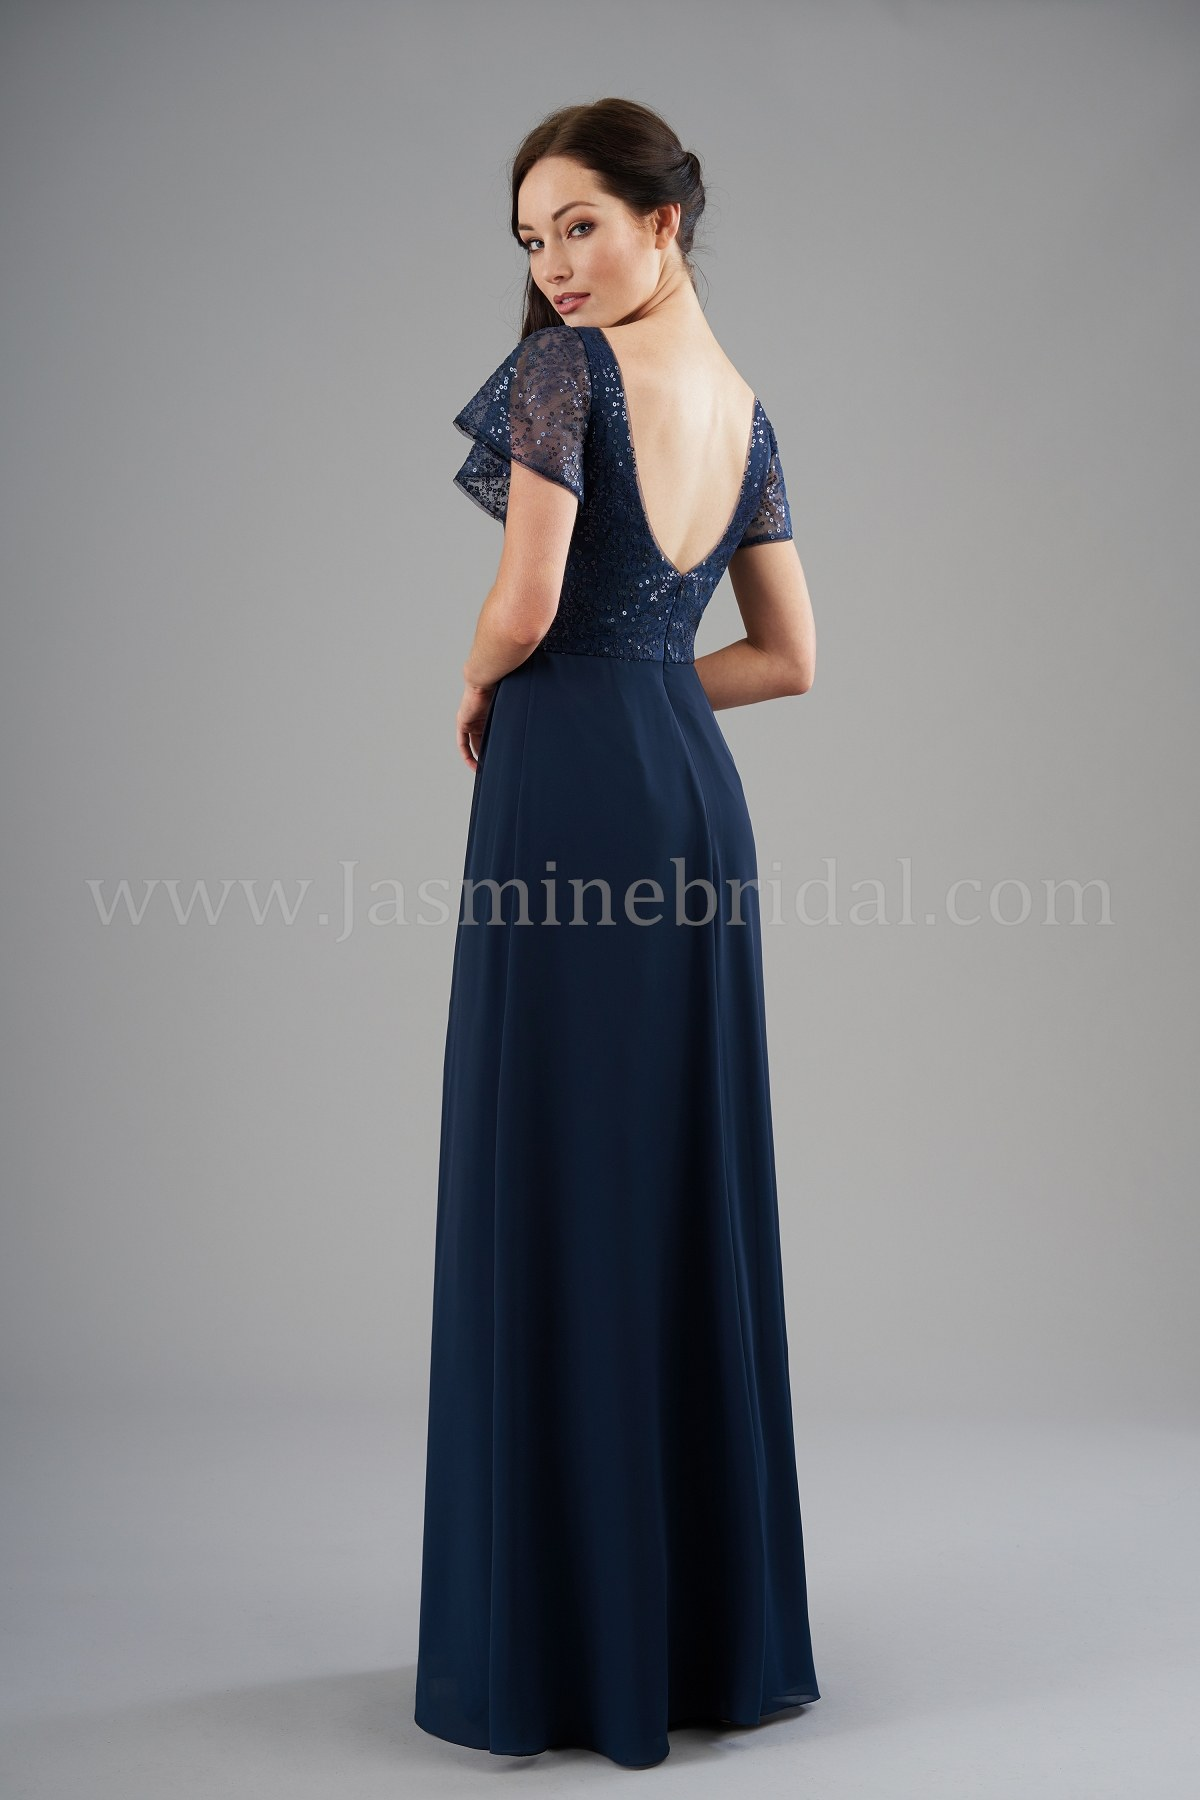 bridesmaid-dresses-B203063-B